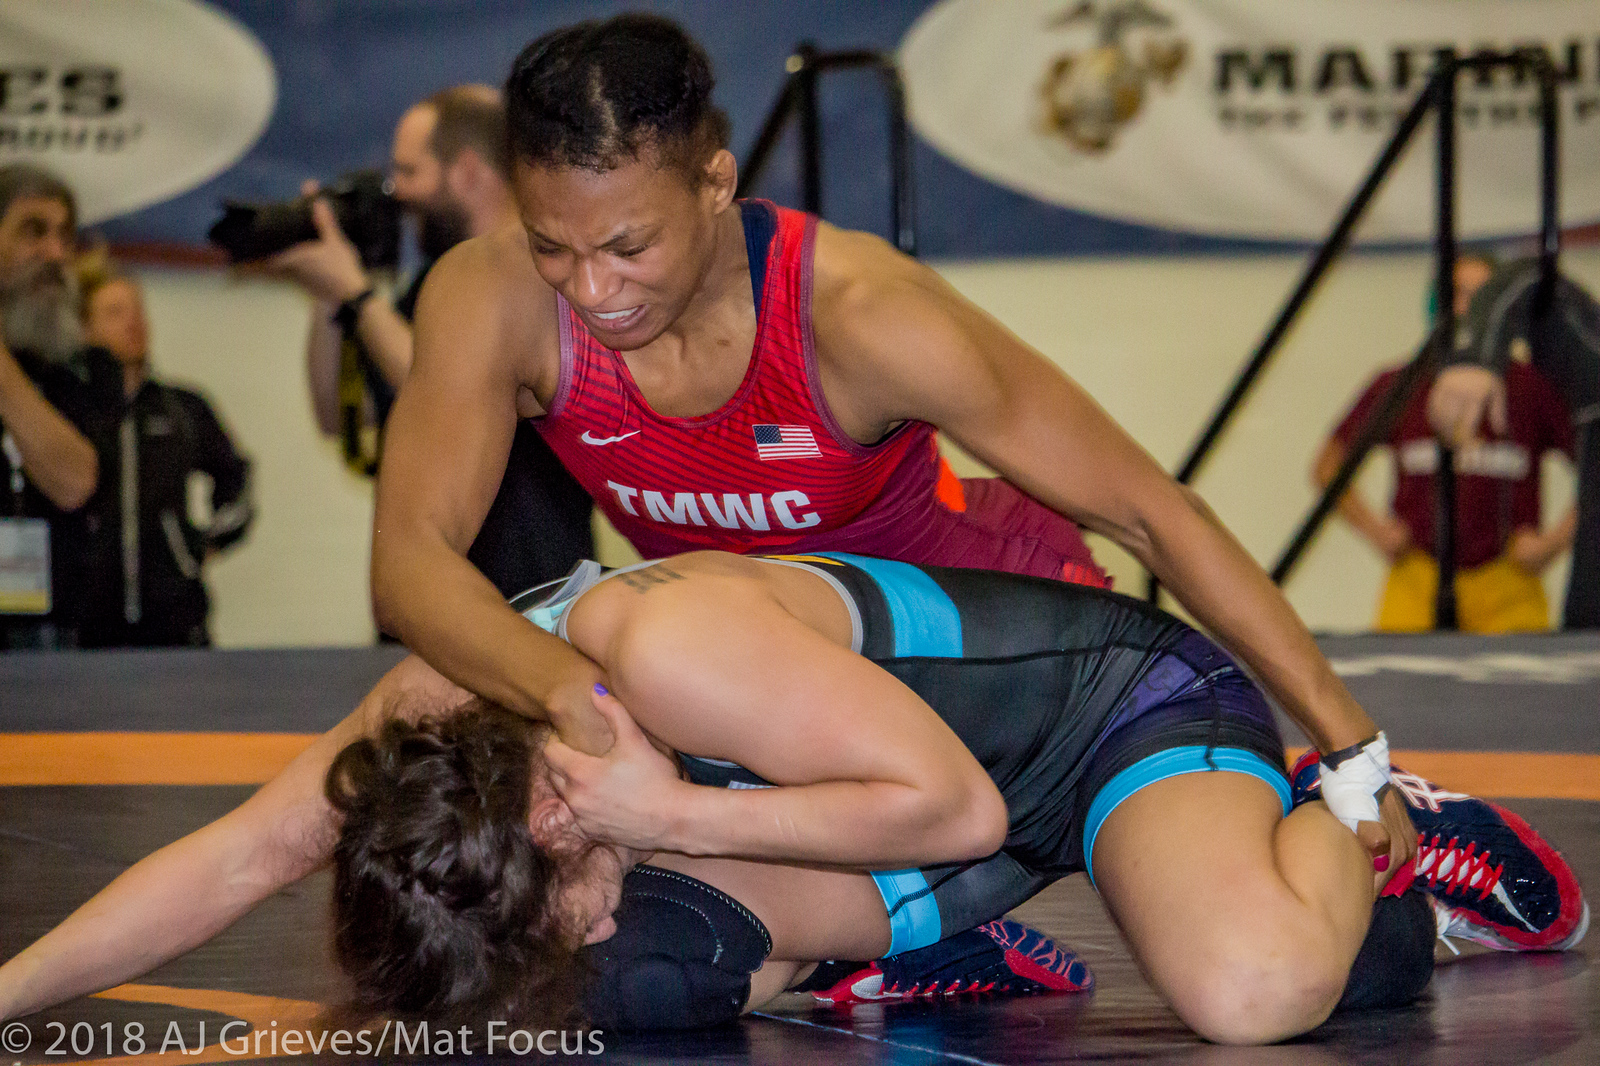 TMWC advances 5 to the finals at the U.S.Open